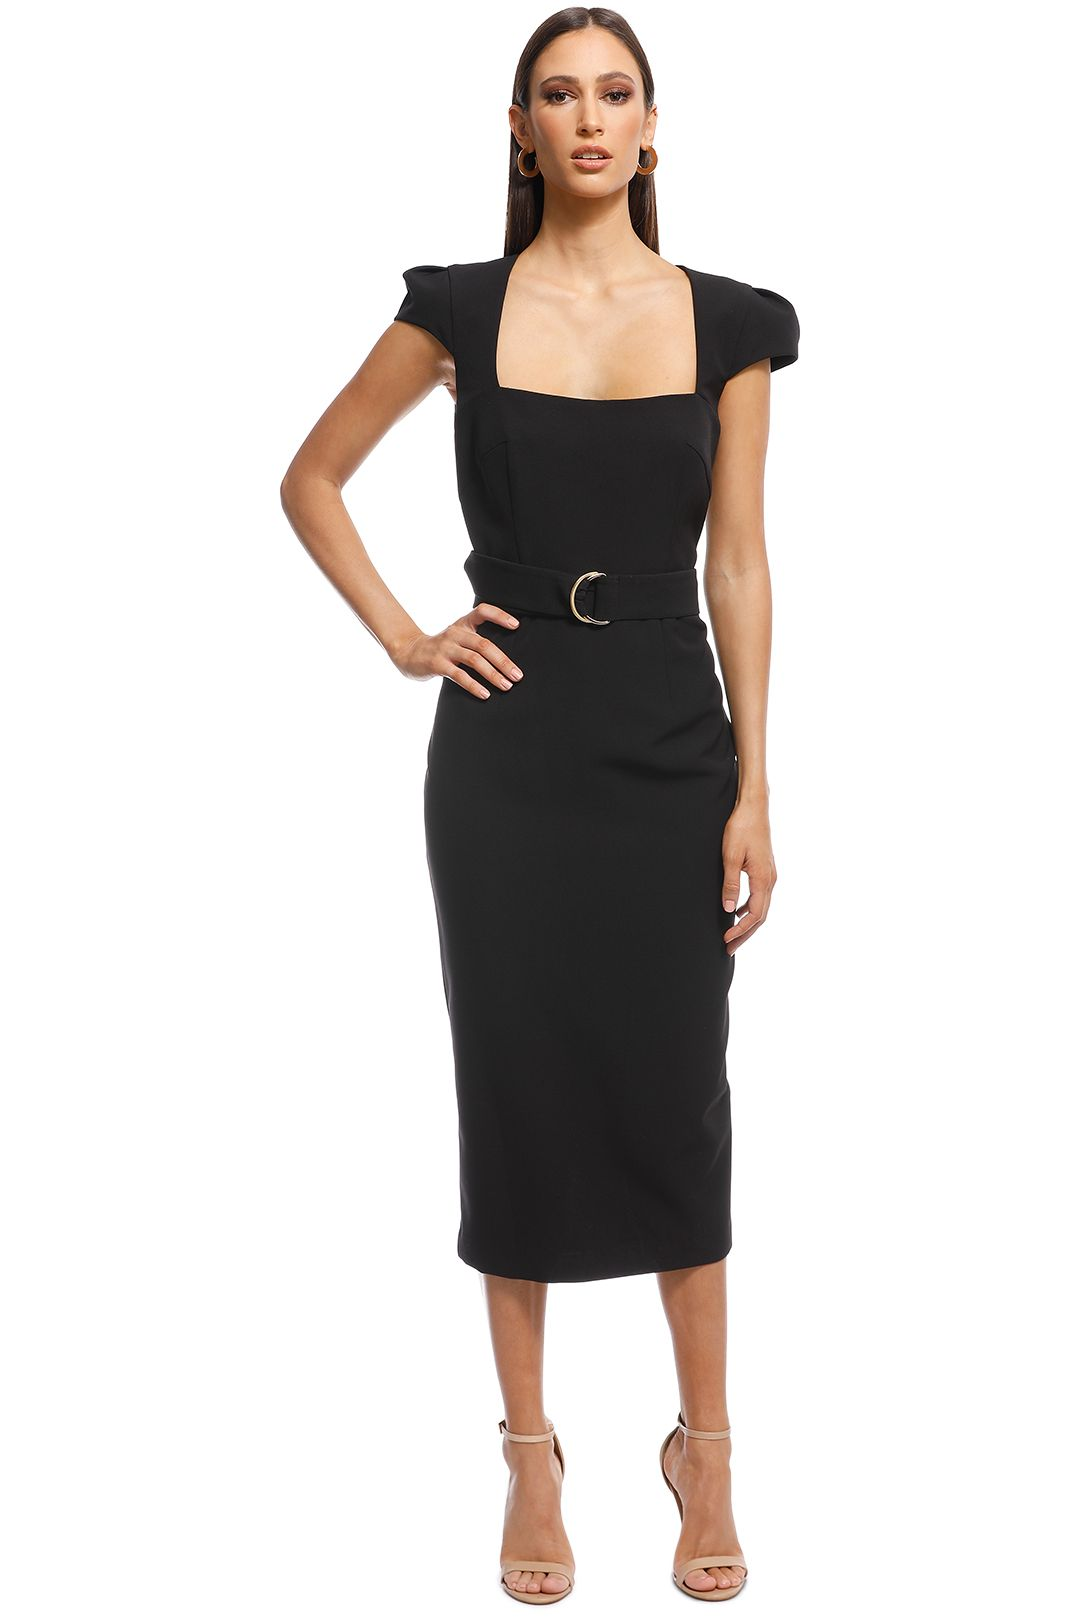 Unspoken - Audrey Dress - Black - Front